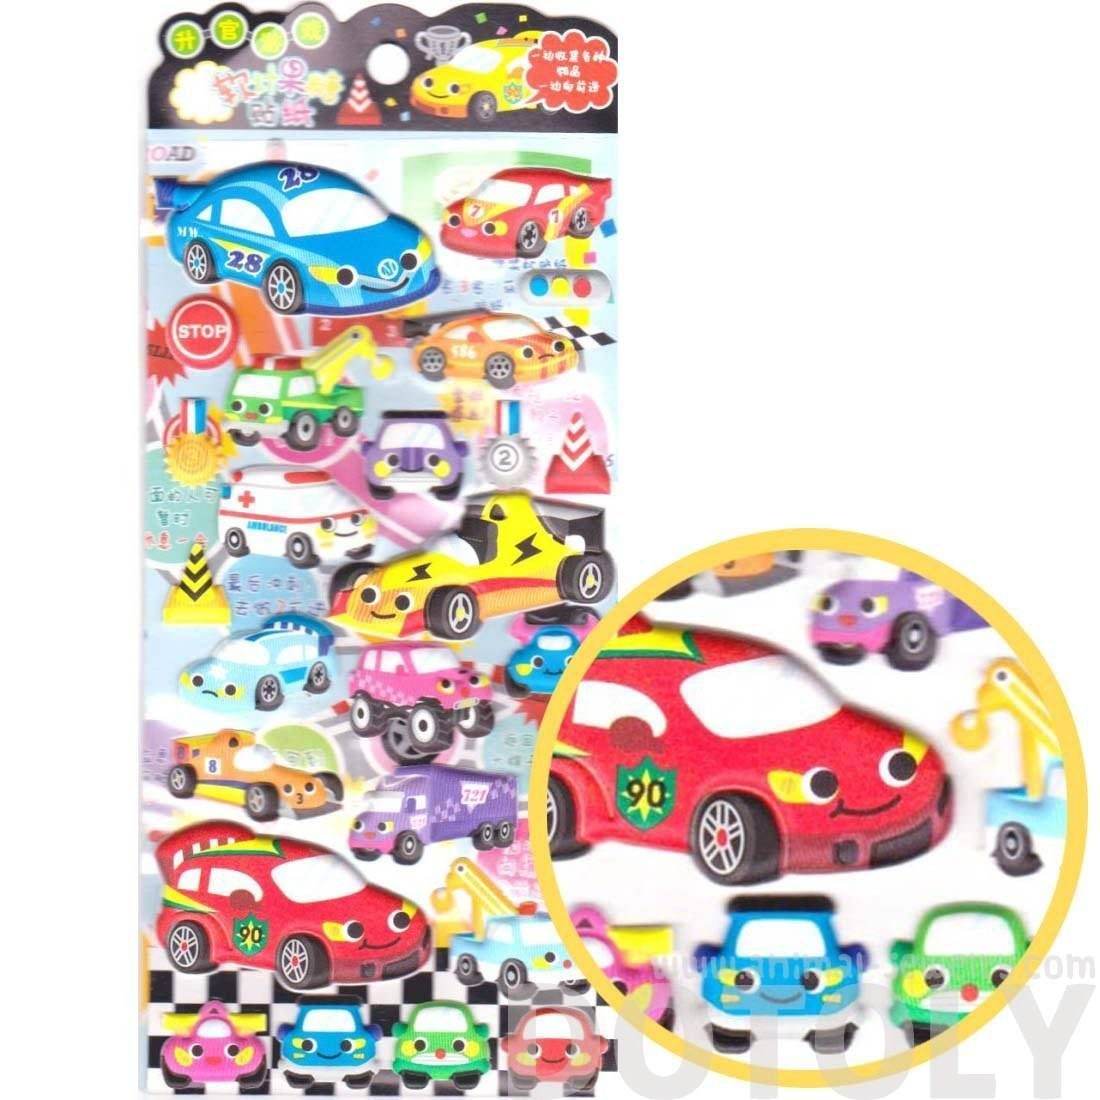 Cars Trucks Race Cars Trucks Shaped Spongy Stickers for Scrapbooking and Decorating